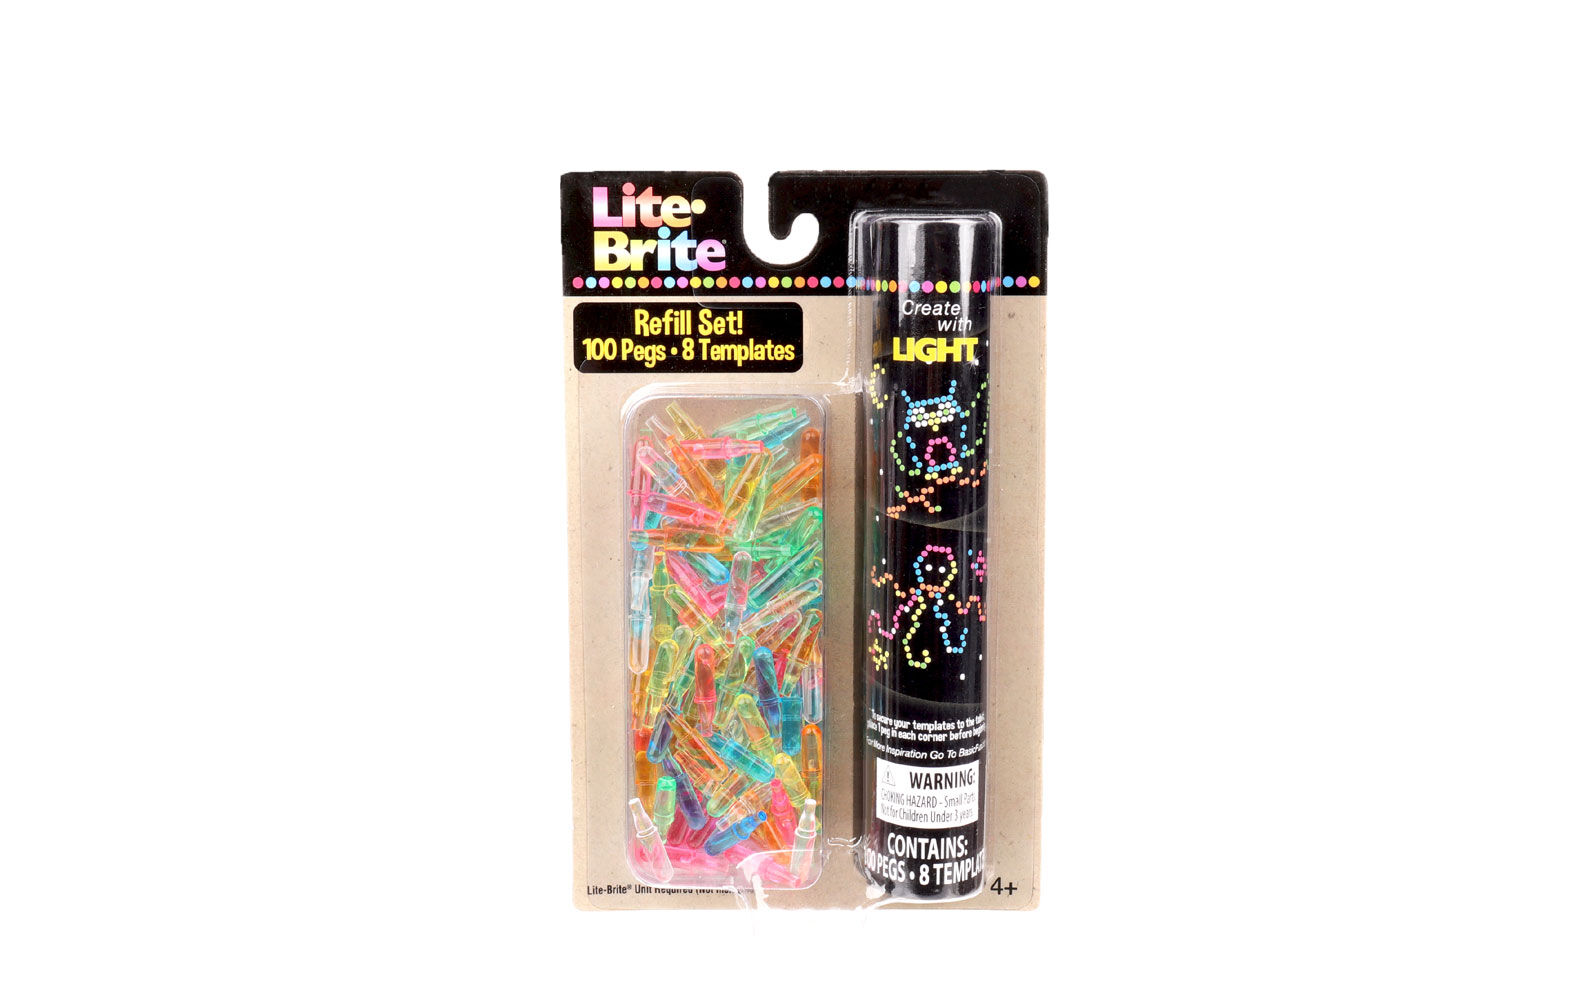 photograph regarding Printable Lite Brite Templates referred to as Lite-Brite Refill Pack